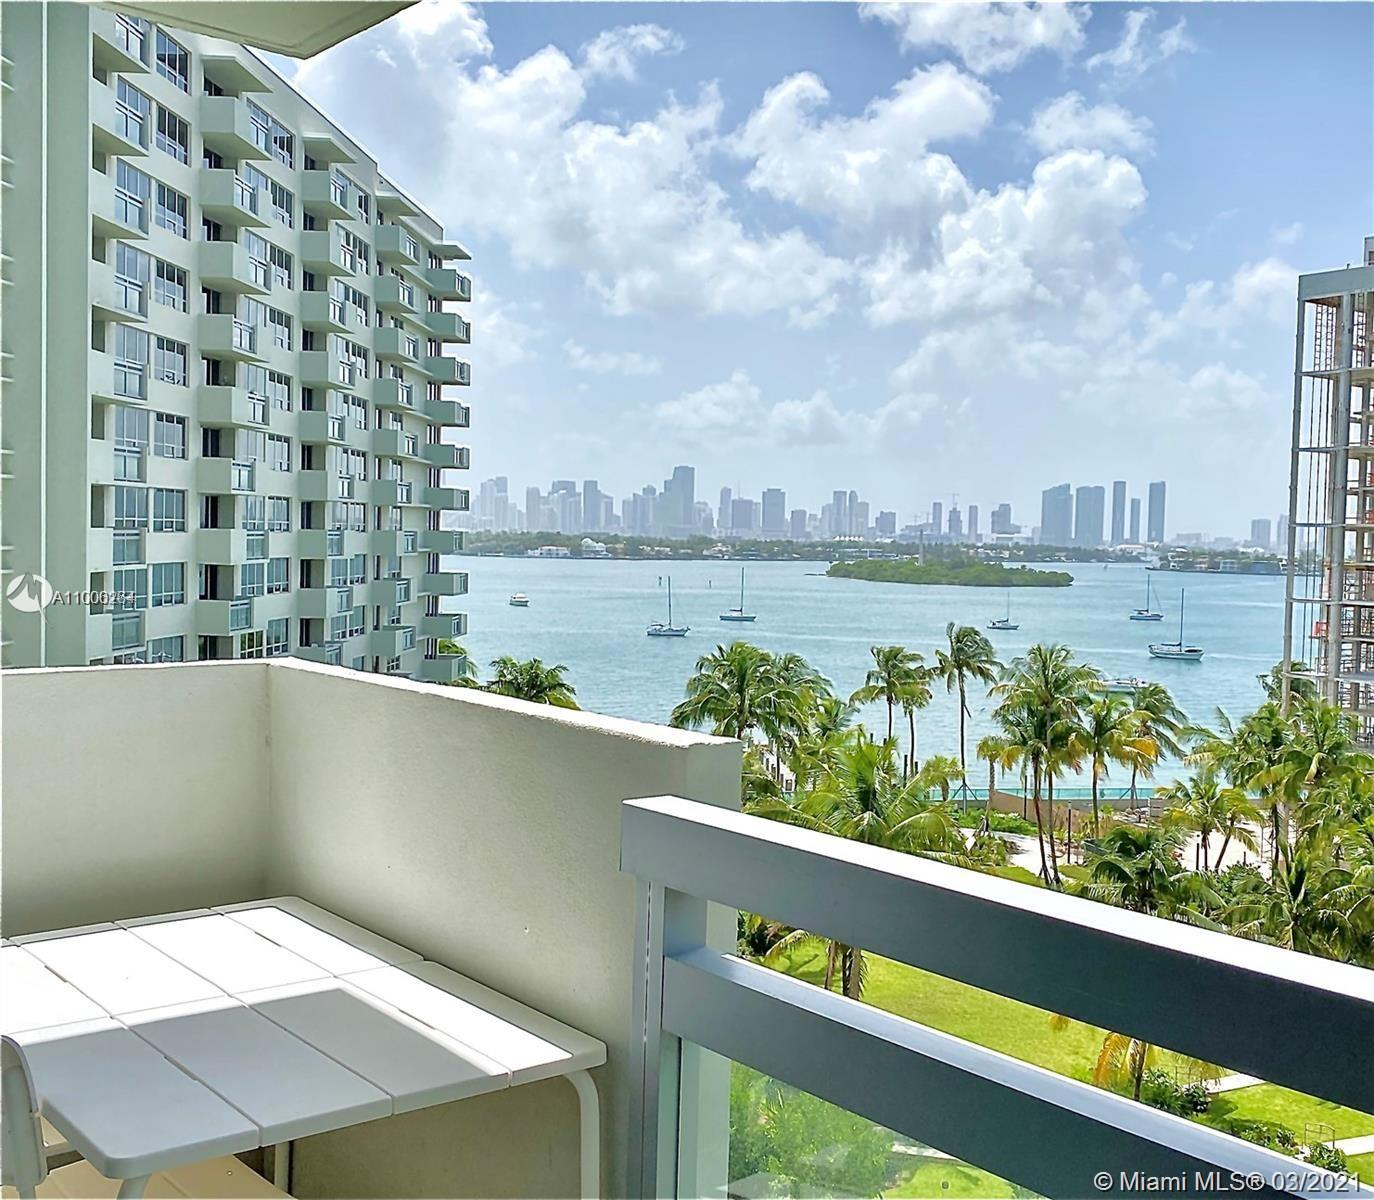 Flamingo South Beach #862S - 1500 BAY RD #862S, Miami Beach, FL 33139